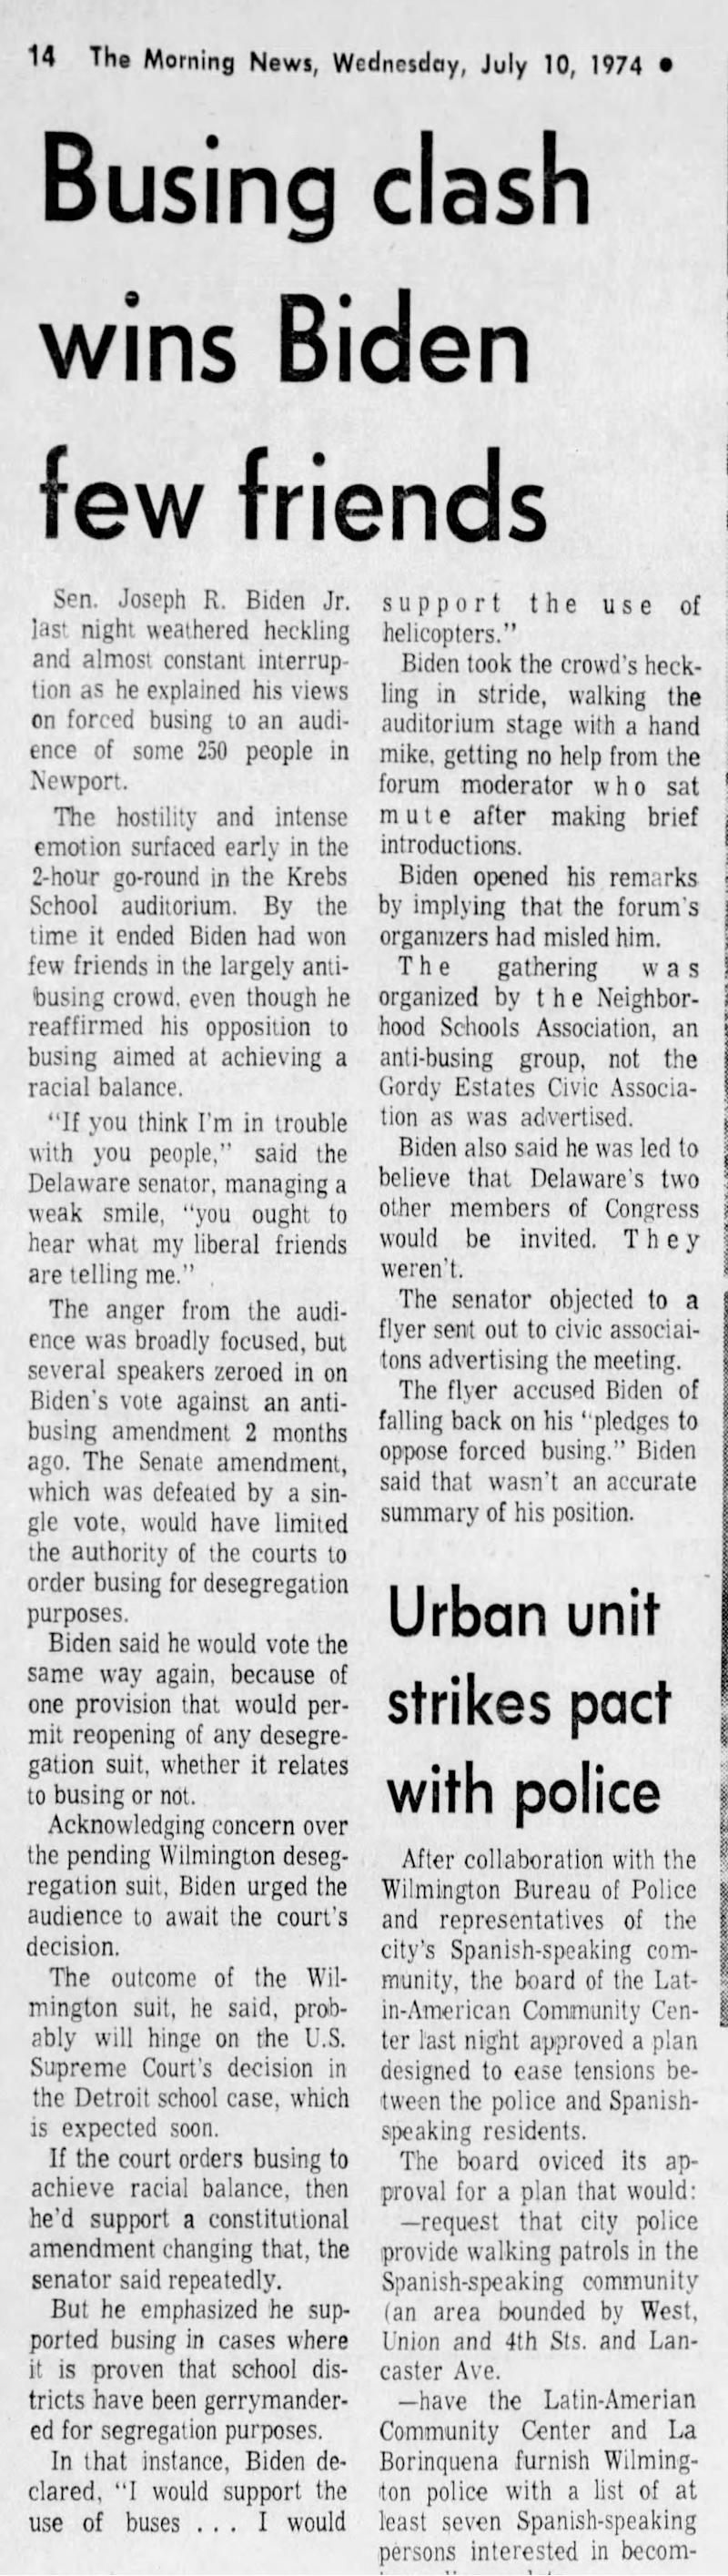 News Journal archival story on July 10, 1974 of Biden being heckled by suburban busing opponents in 1974